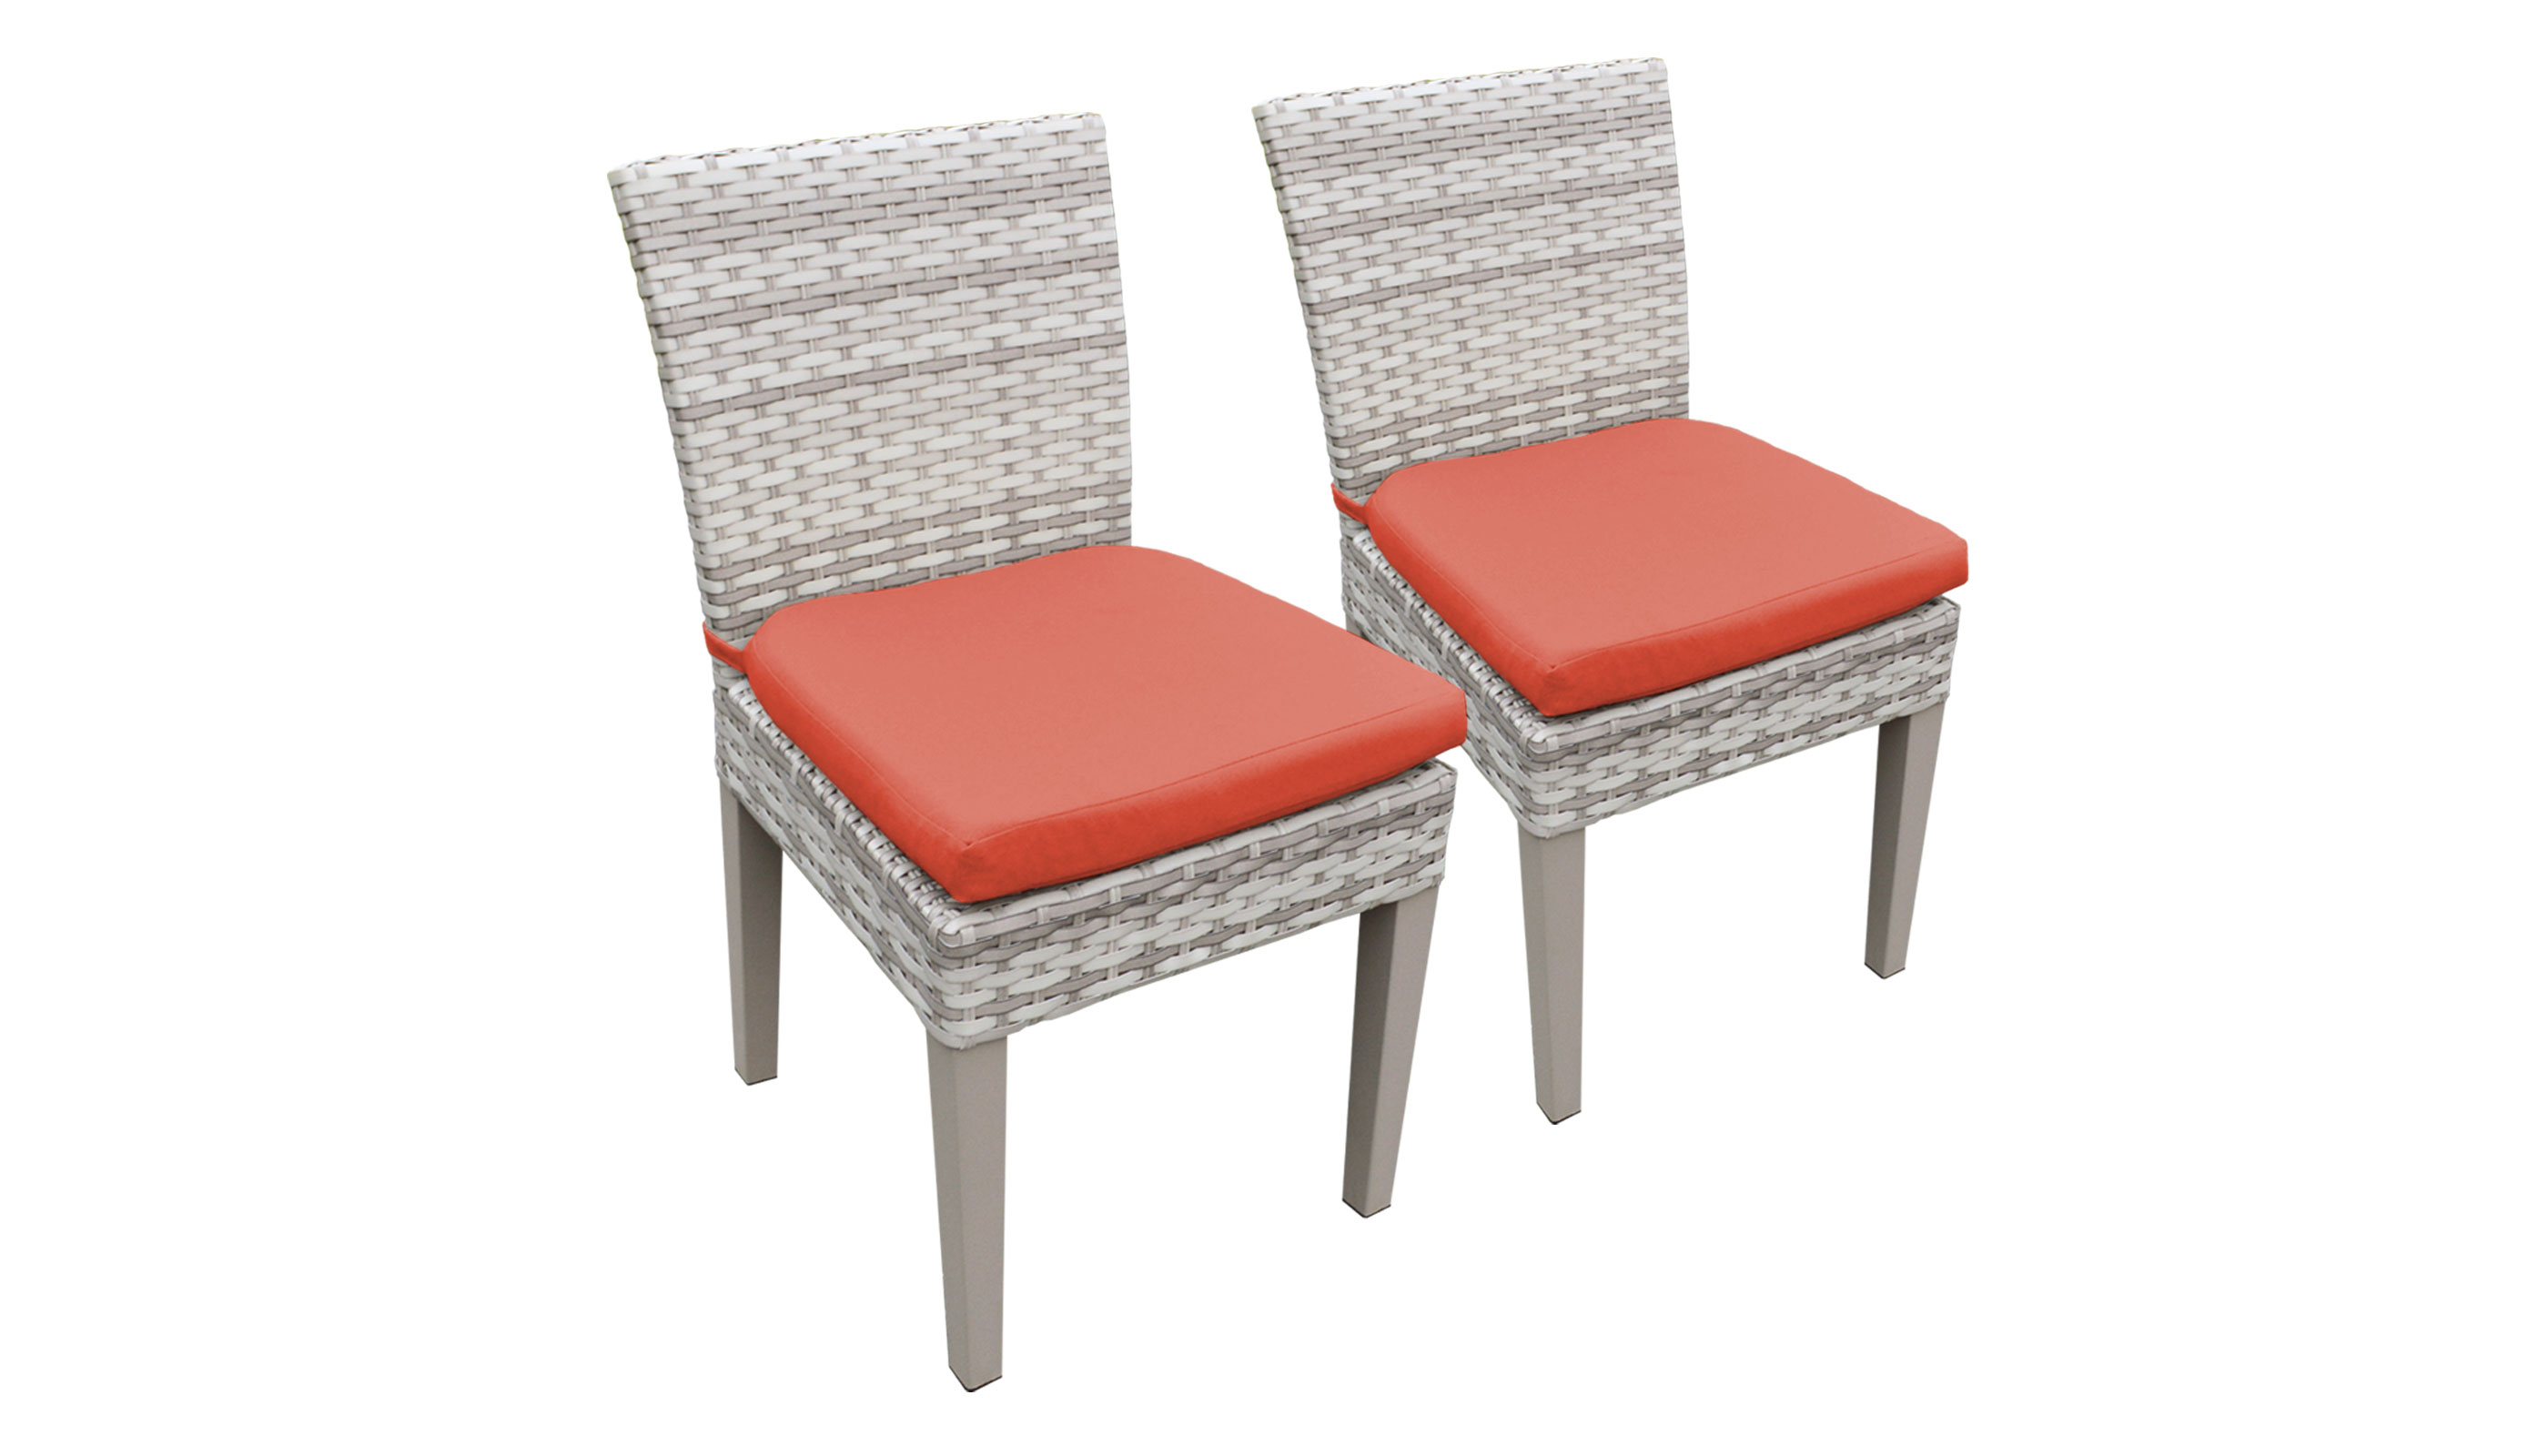 2 New Haven Armless Dining Chairs - Design Furnishings